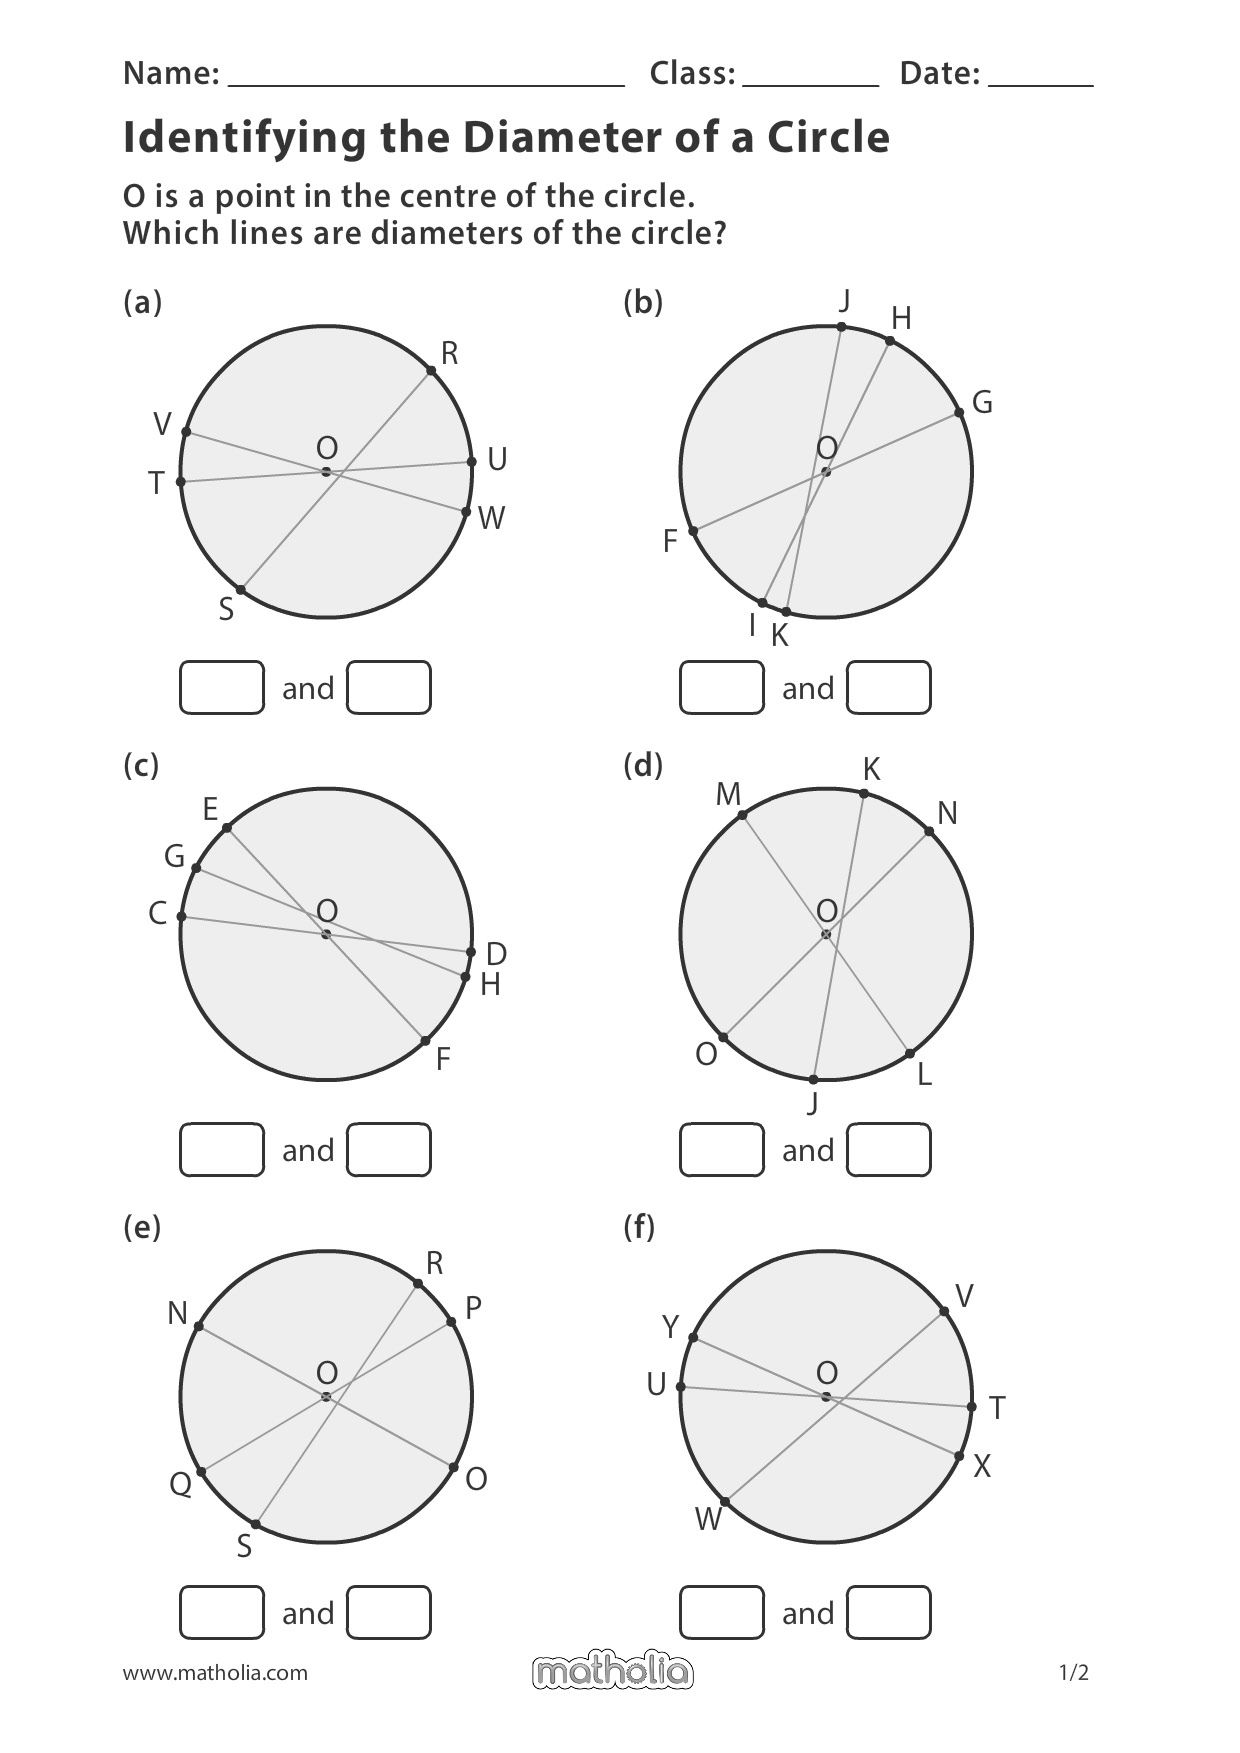 Identifying The Diameter Of A Circle In